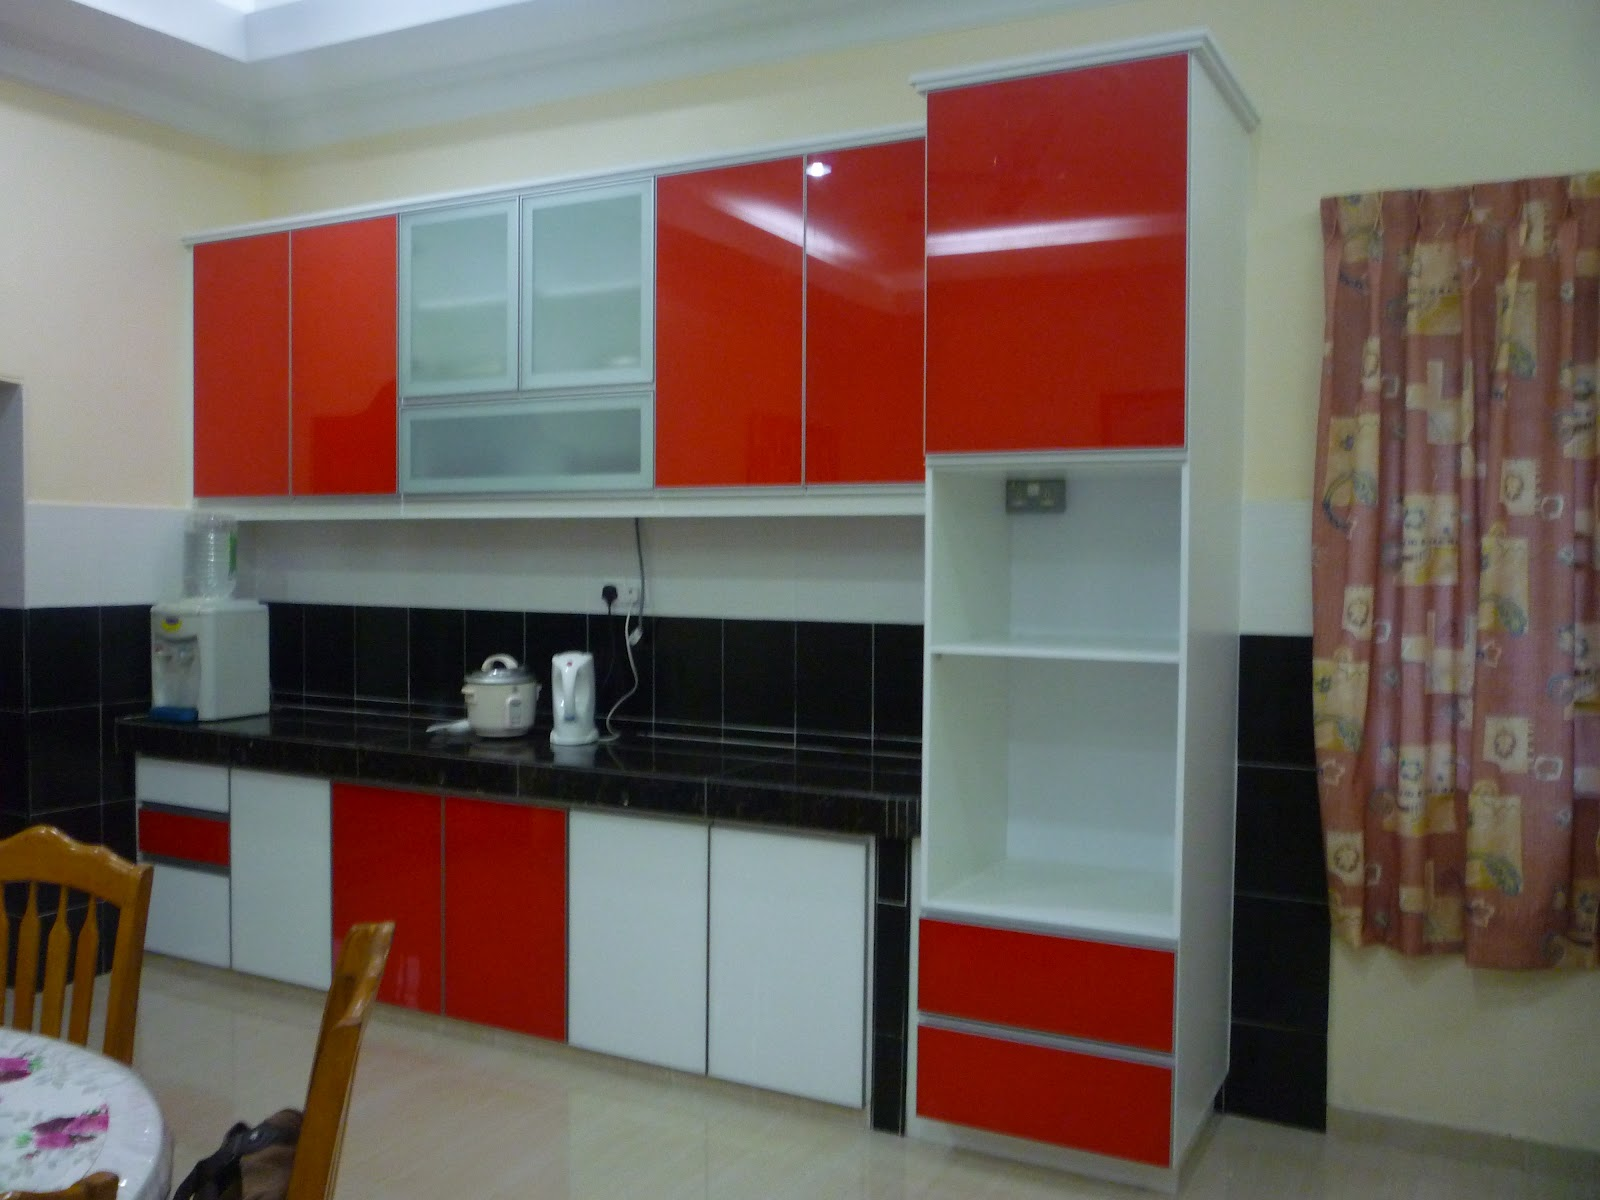 Red Kitchens with White Cabinets